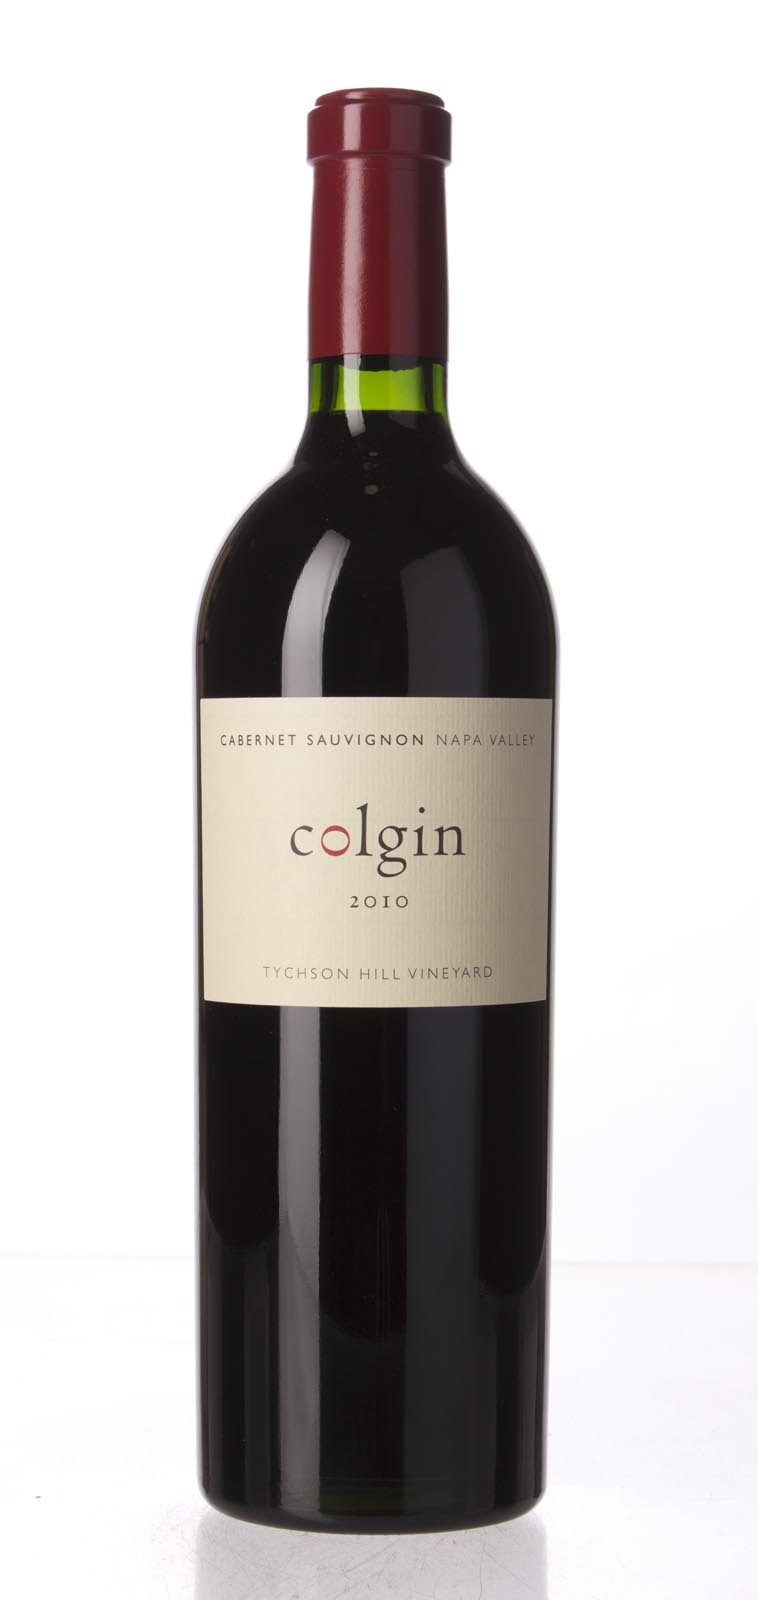 Colgin Cabernet Sauvignon Tychson Hill Vineyard 2010,  (AG98, WA96, ST94+) from The BPW - Merchants of rare and fine wines.